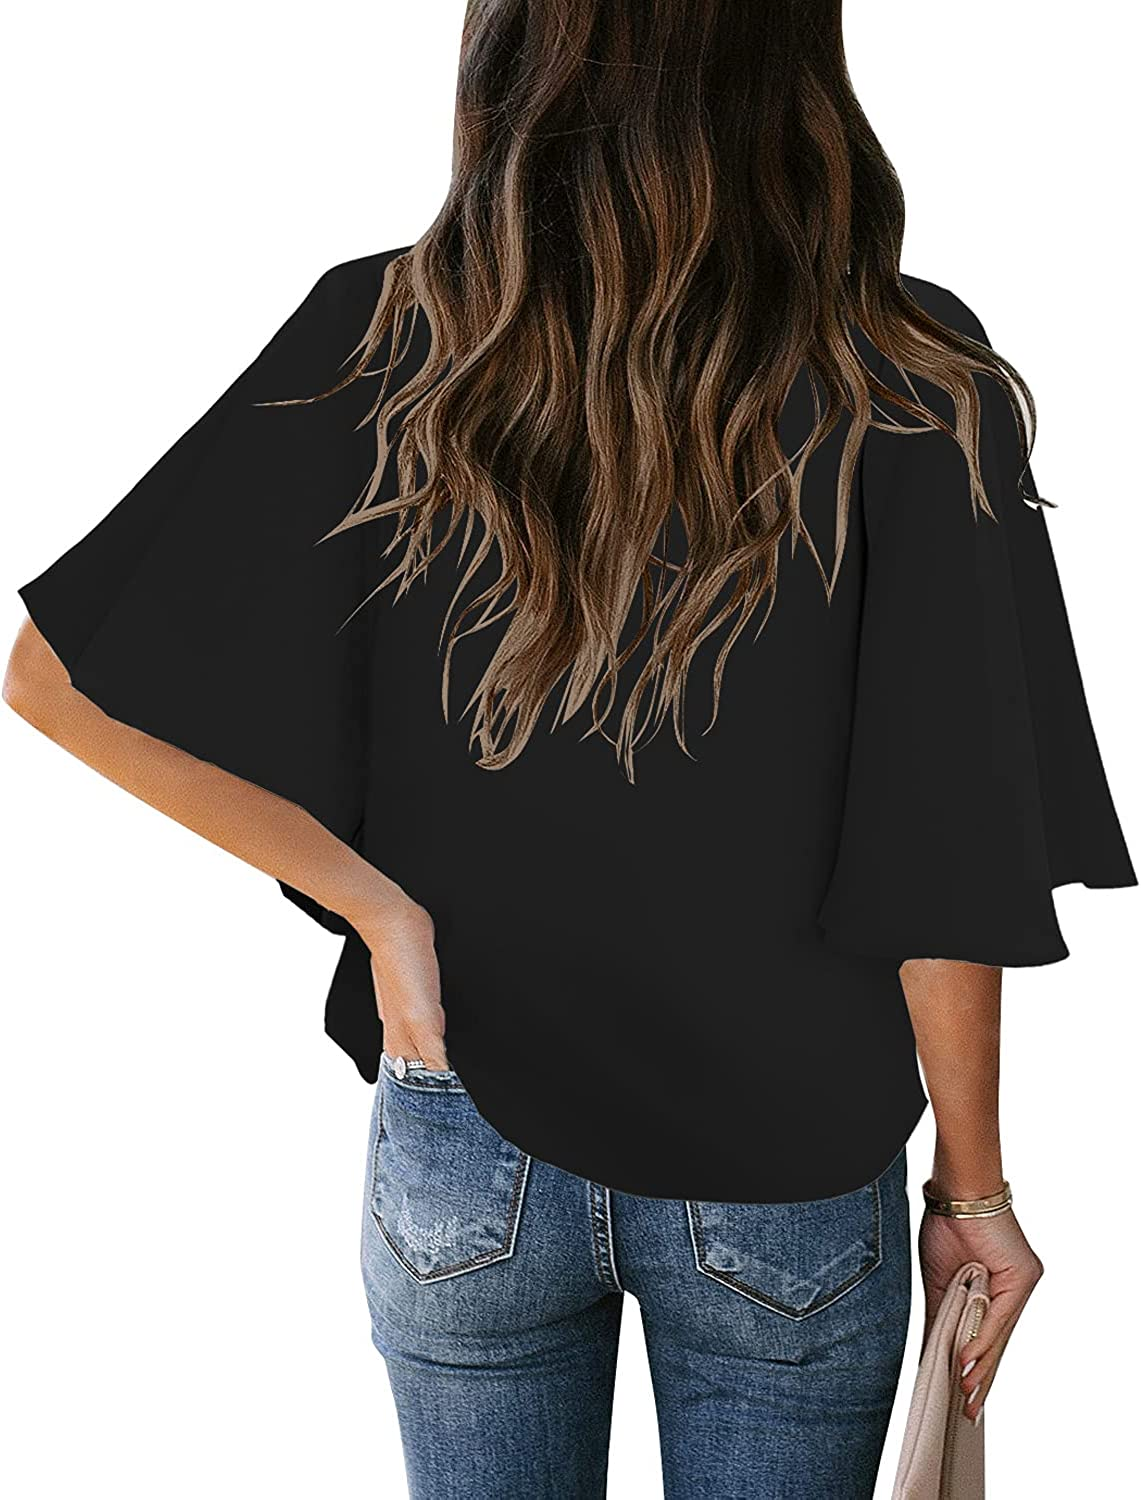 luvamia Women Button Up Down Blouse Tie Knot Front Tops Long Ruffel Sleeve V Neck Shirt Going Out Dressy Casual Work